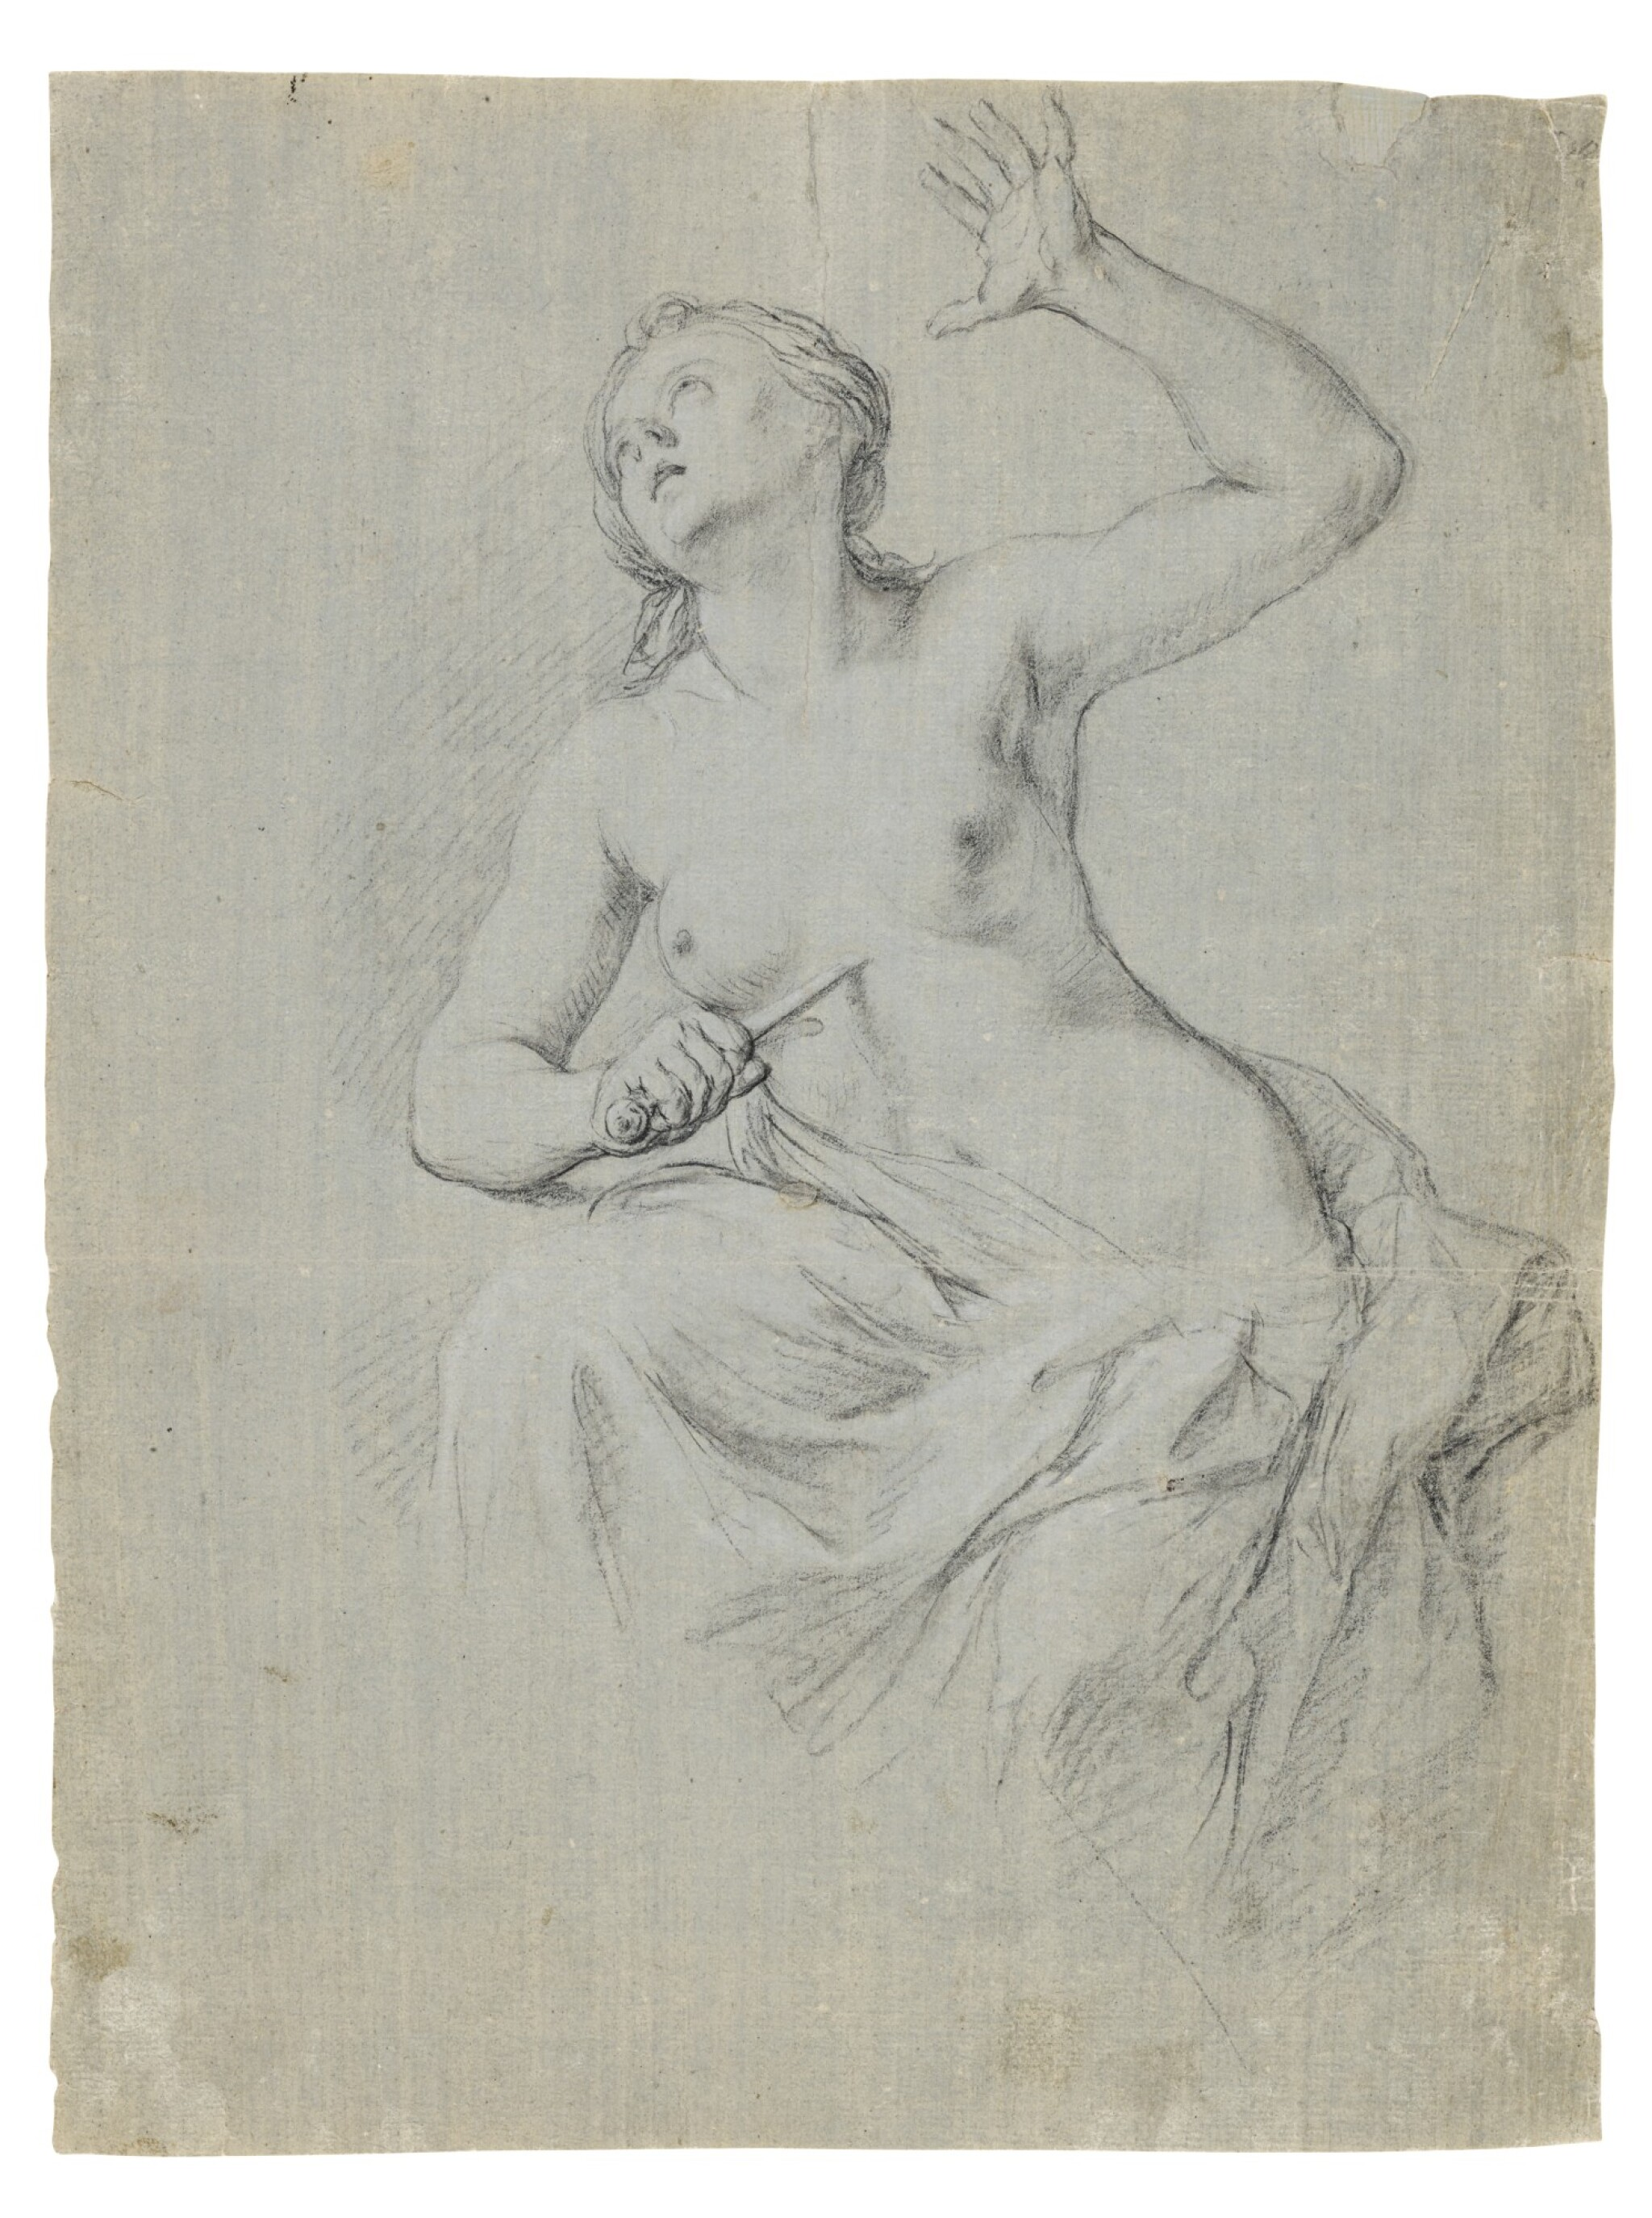 View full screen - View 1 of Lot 71. Recto: The Death of Lucretia Verso: A compositional study with two figures.